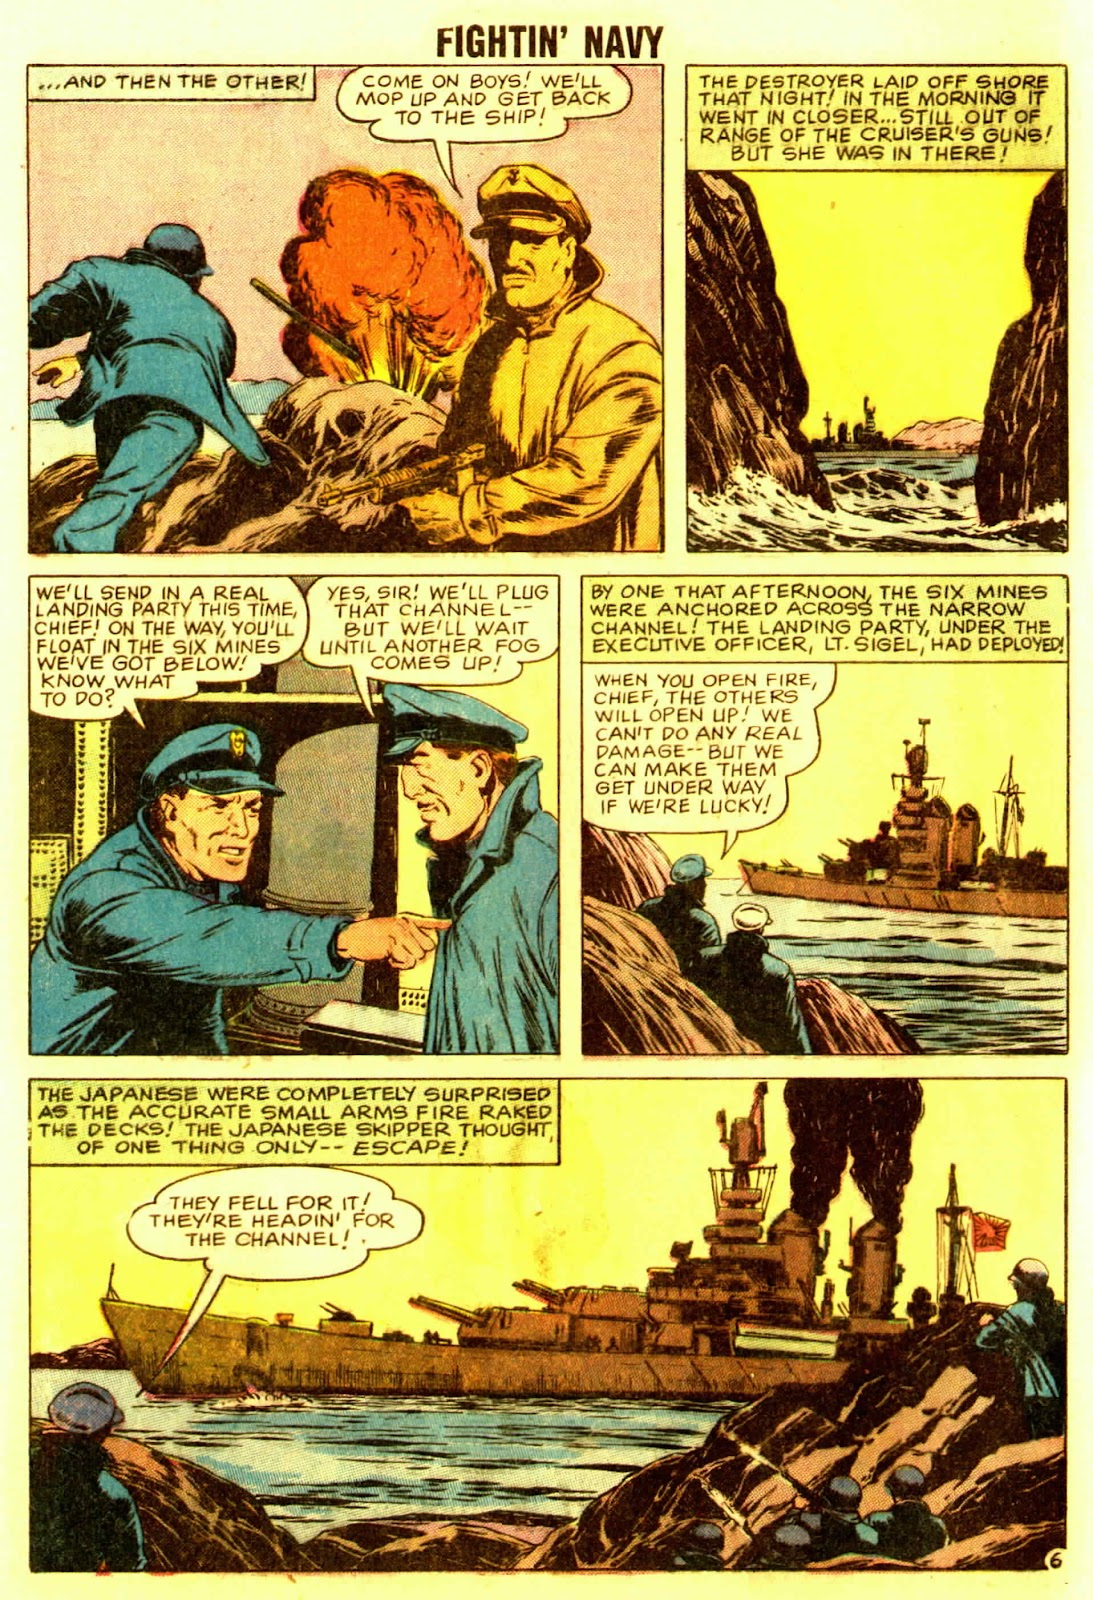 Read online Fightin' Navy comic -  Issue #83 - 72